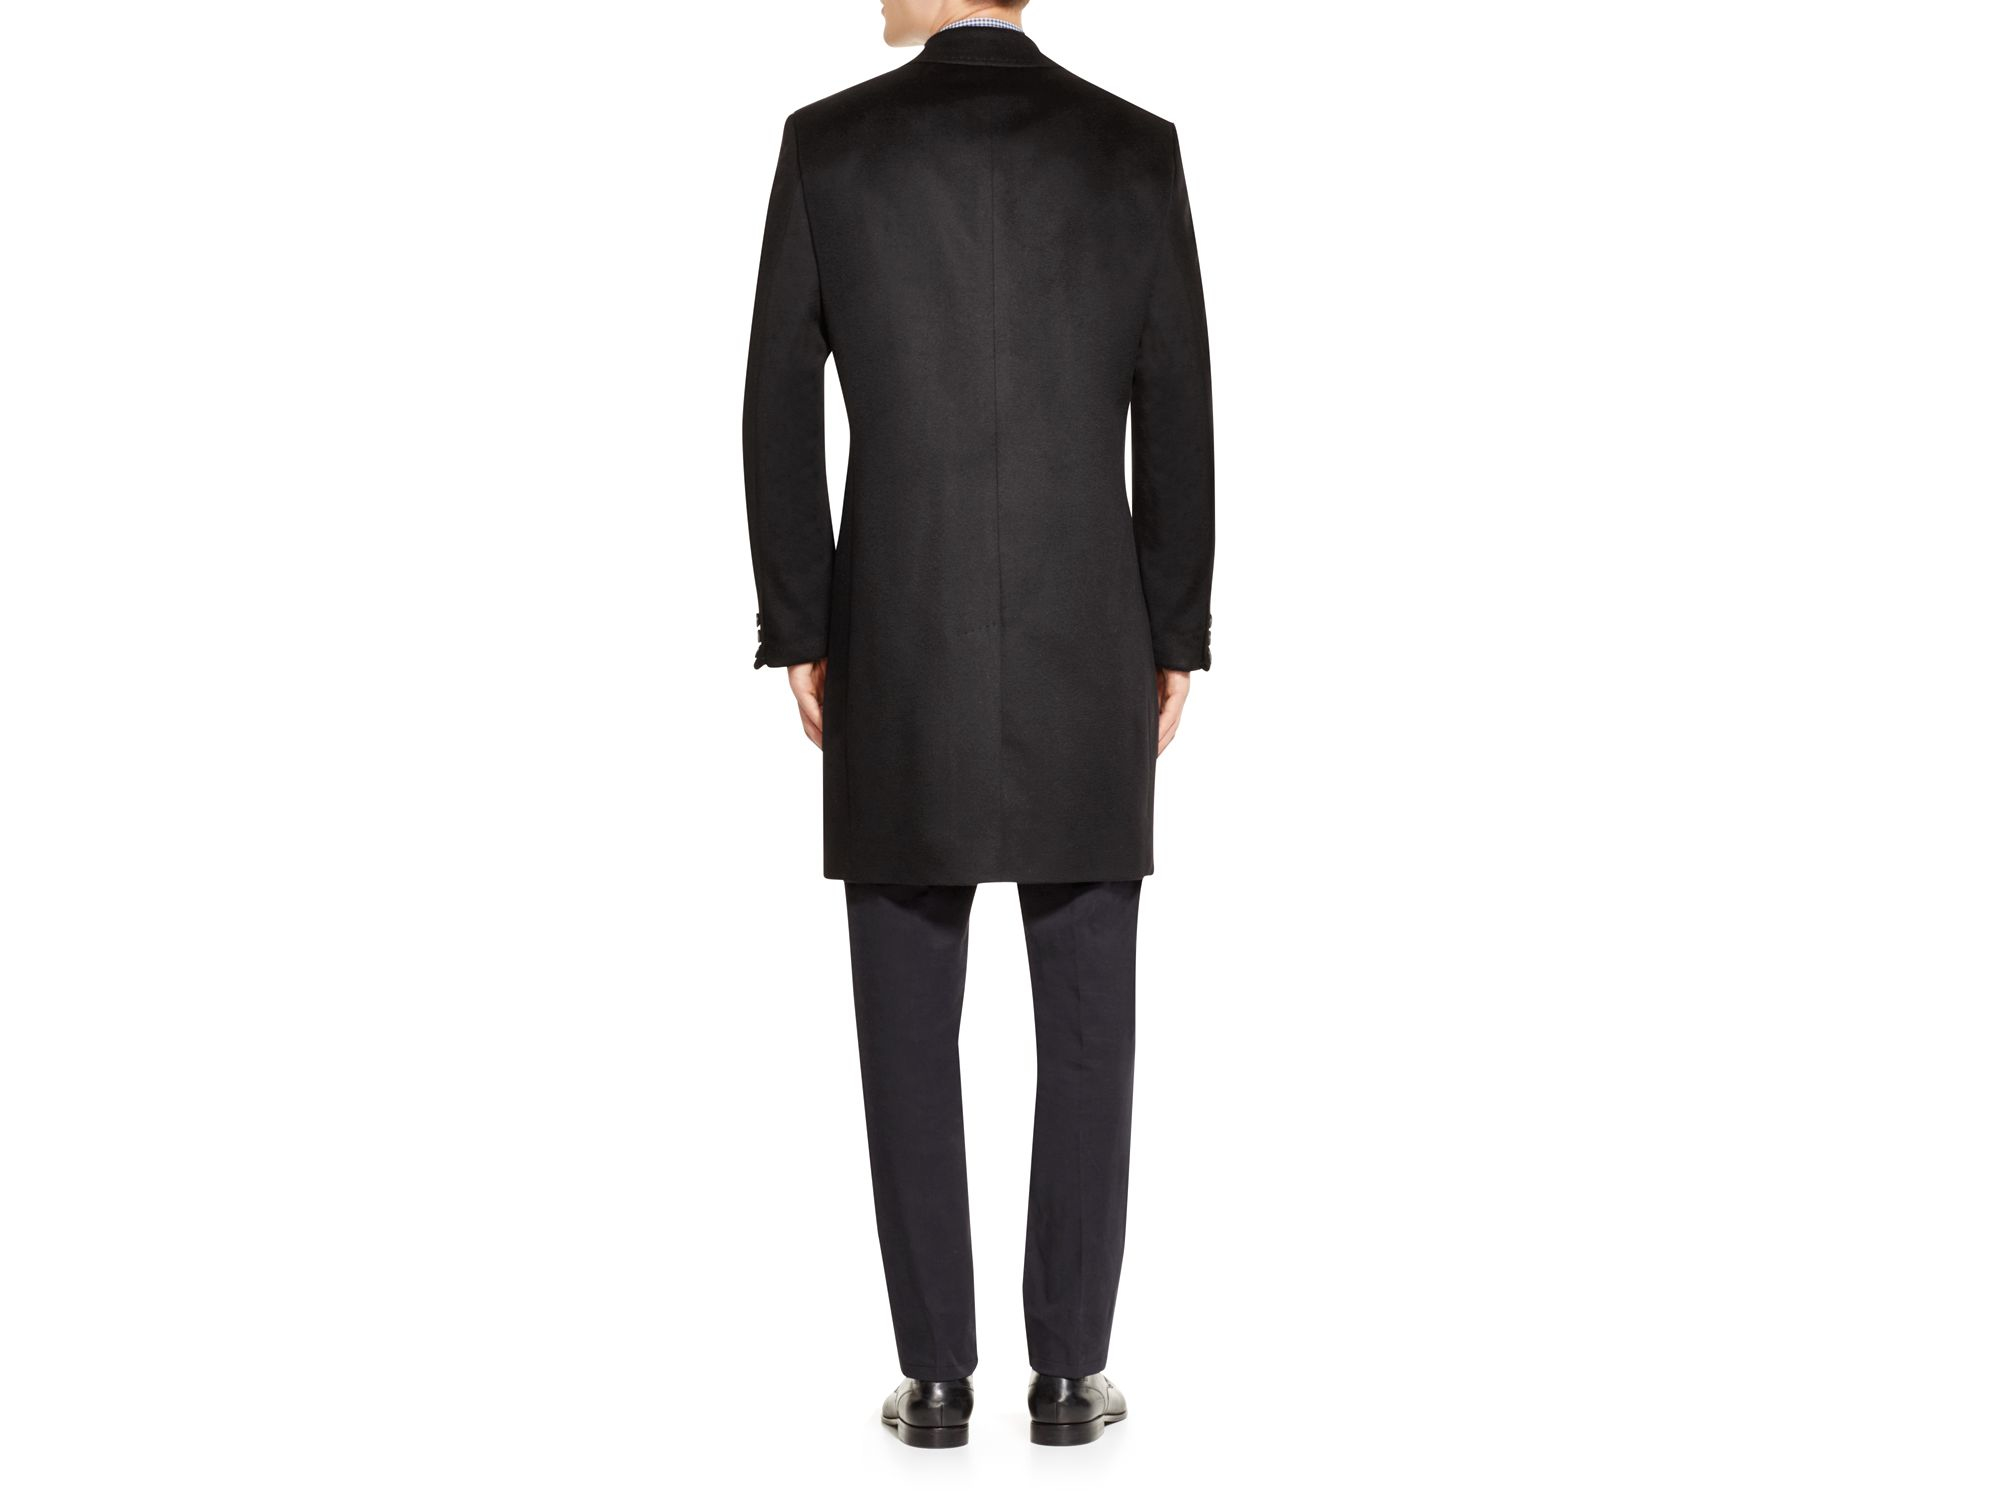 a147e234026c Lyst - BOSS Stratus Wool   Cashmere Regular Fit Topcoat in Black for Men